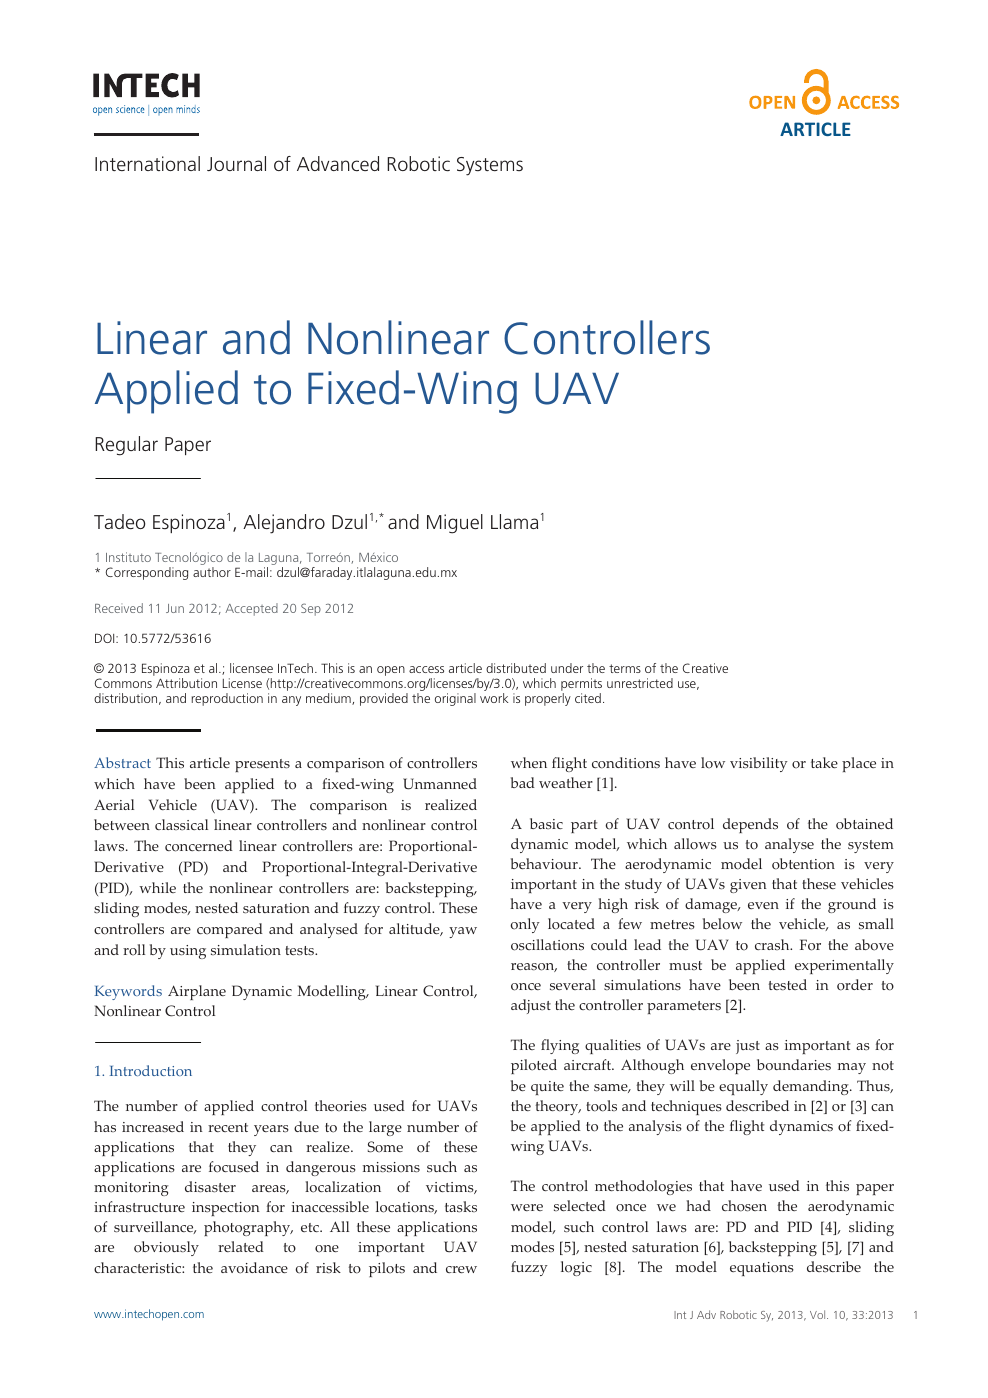 Linear and Nonlinear Controllers Applied to Fixed-Wing UAV